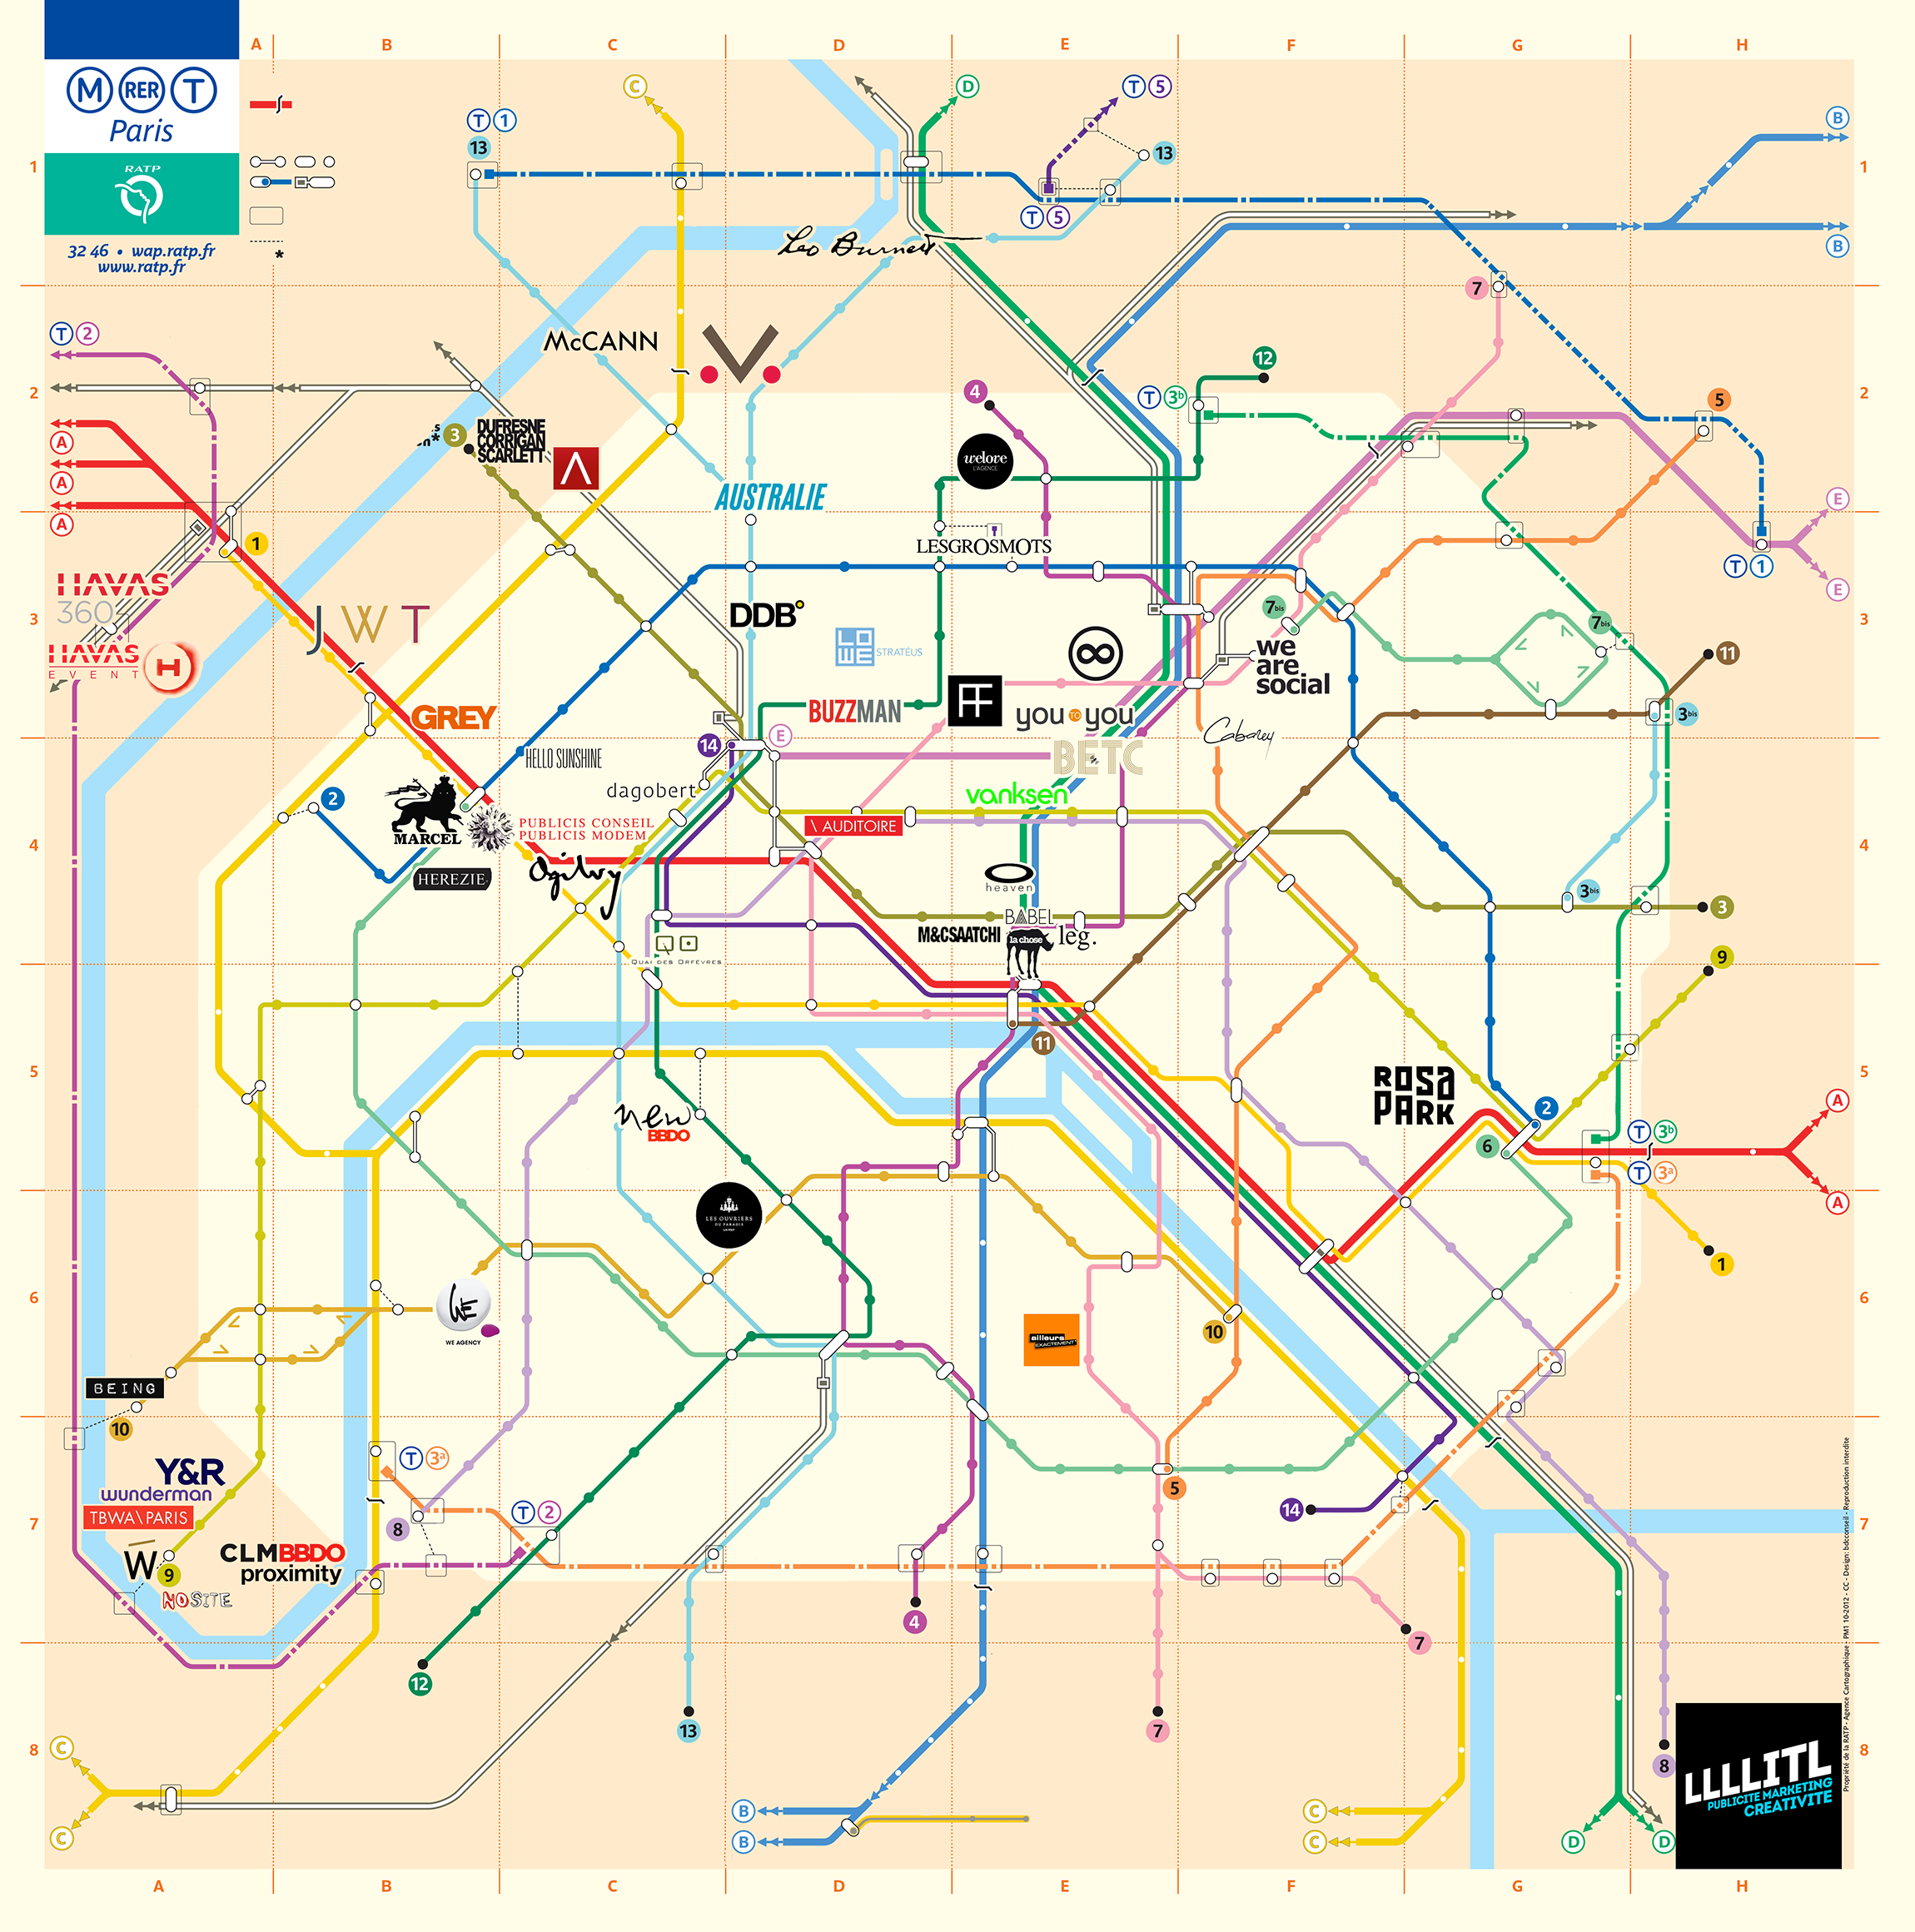 llllitl-carte-plan-paris-des-agences-de-publicité-plan-de-metro-lignes-logos-agences-france-paris-french-ad-agencies-parisian-road-map-subway-ratp-rer